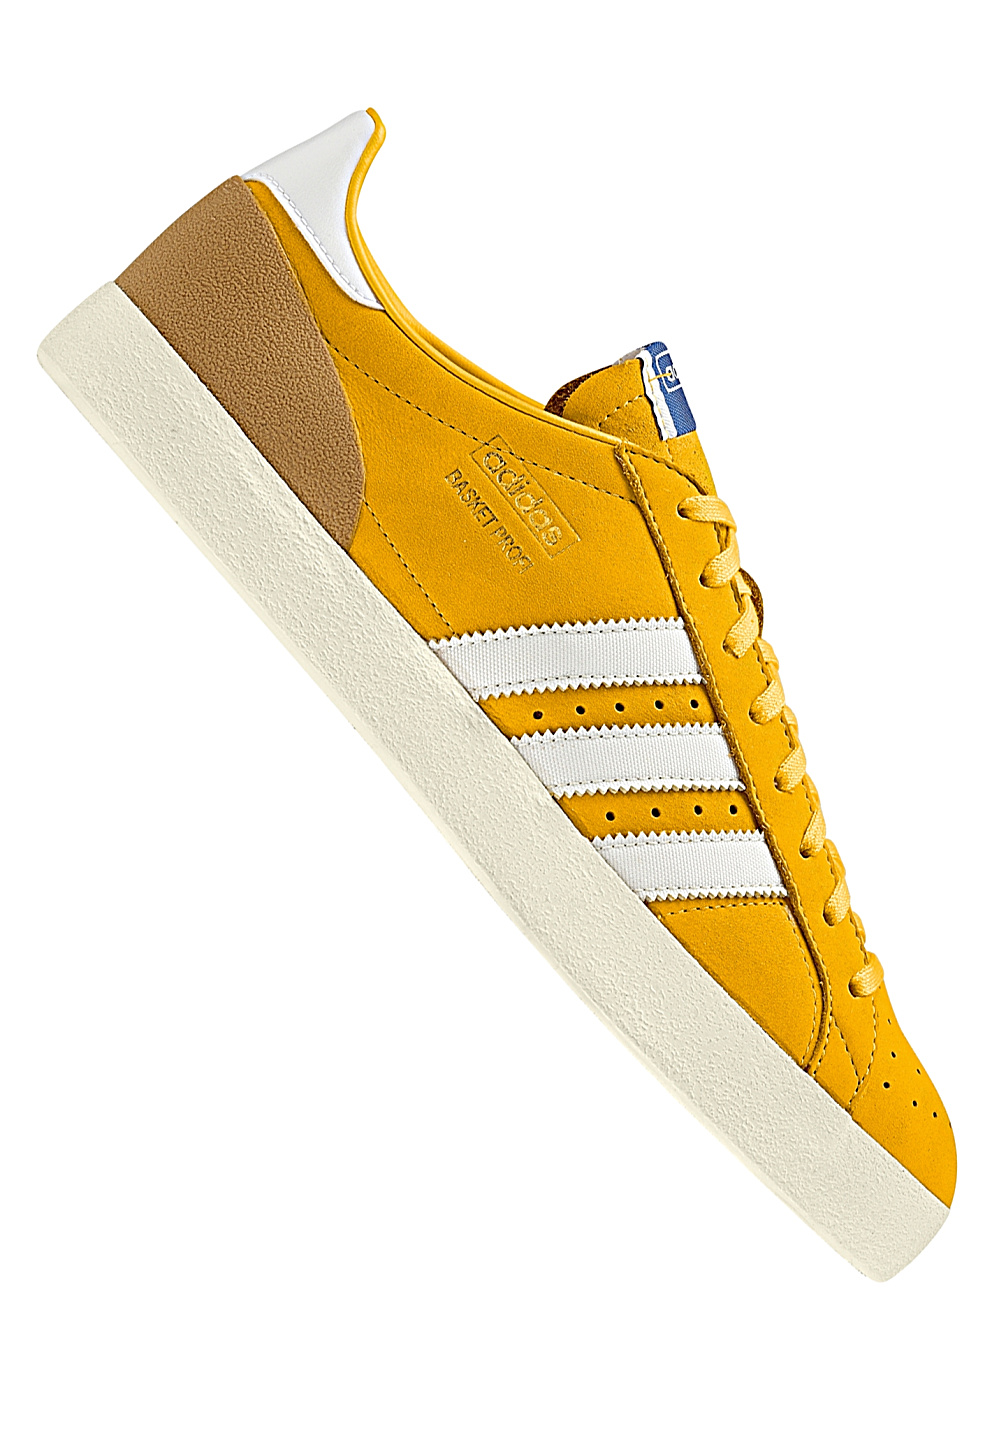 adidas basket profi yellow,Adidas UK Originals basket profi